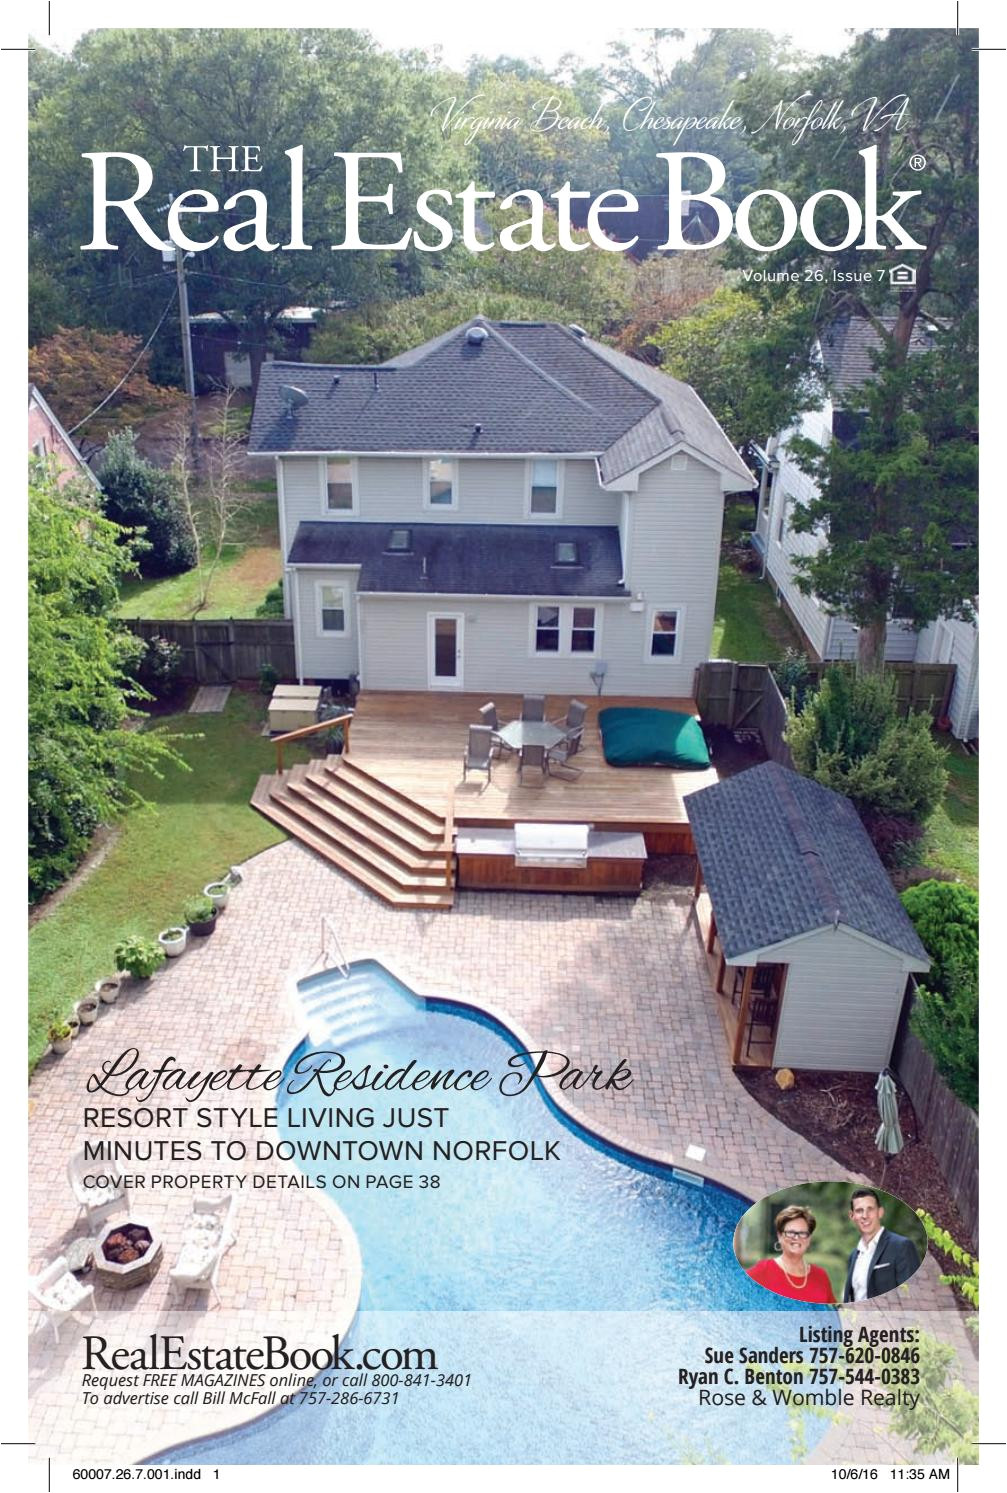 va beach chesapeake norfolk treb vol 26 no 7 by m w mcfall inc issuu